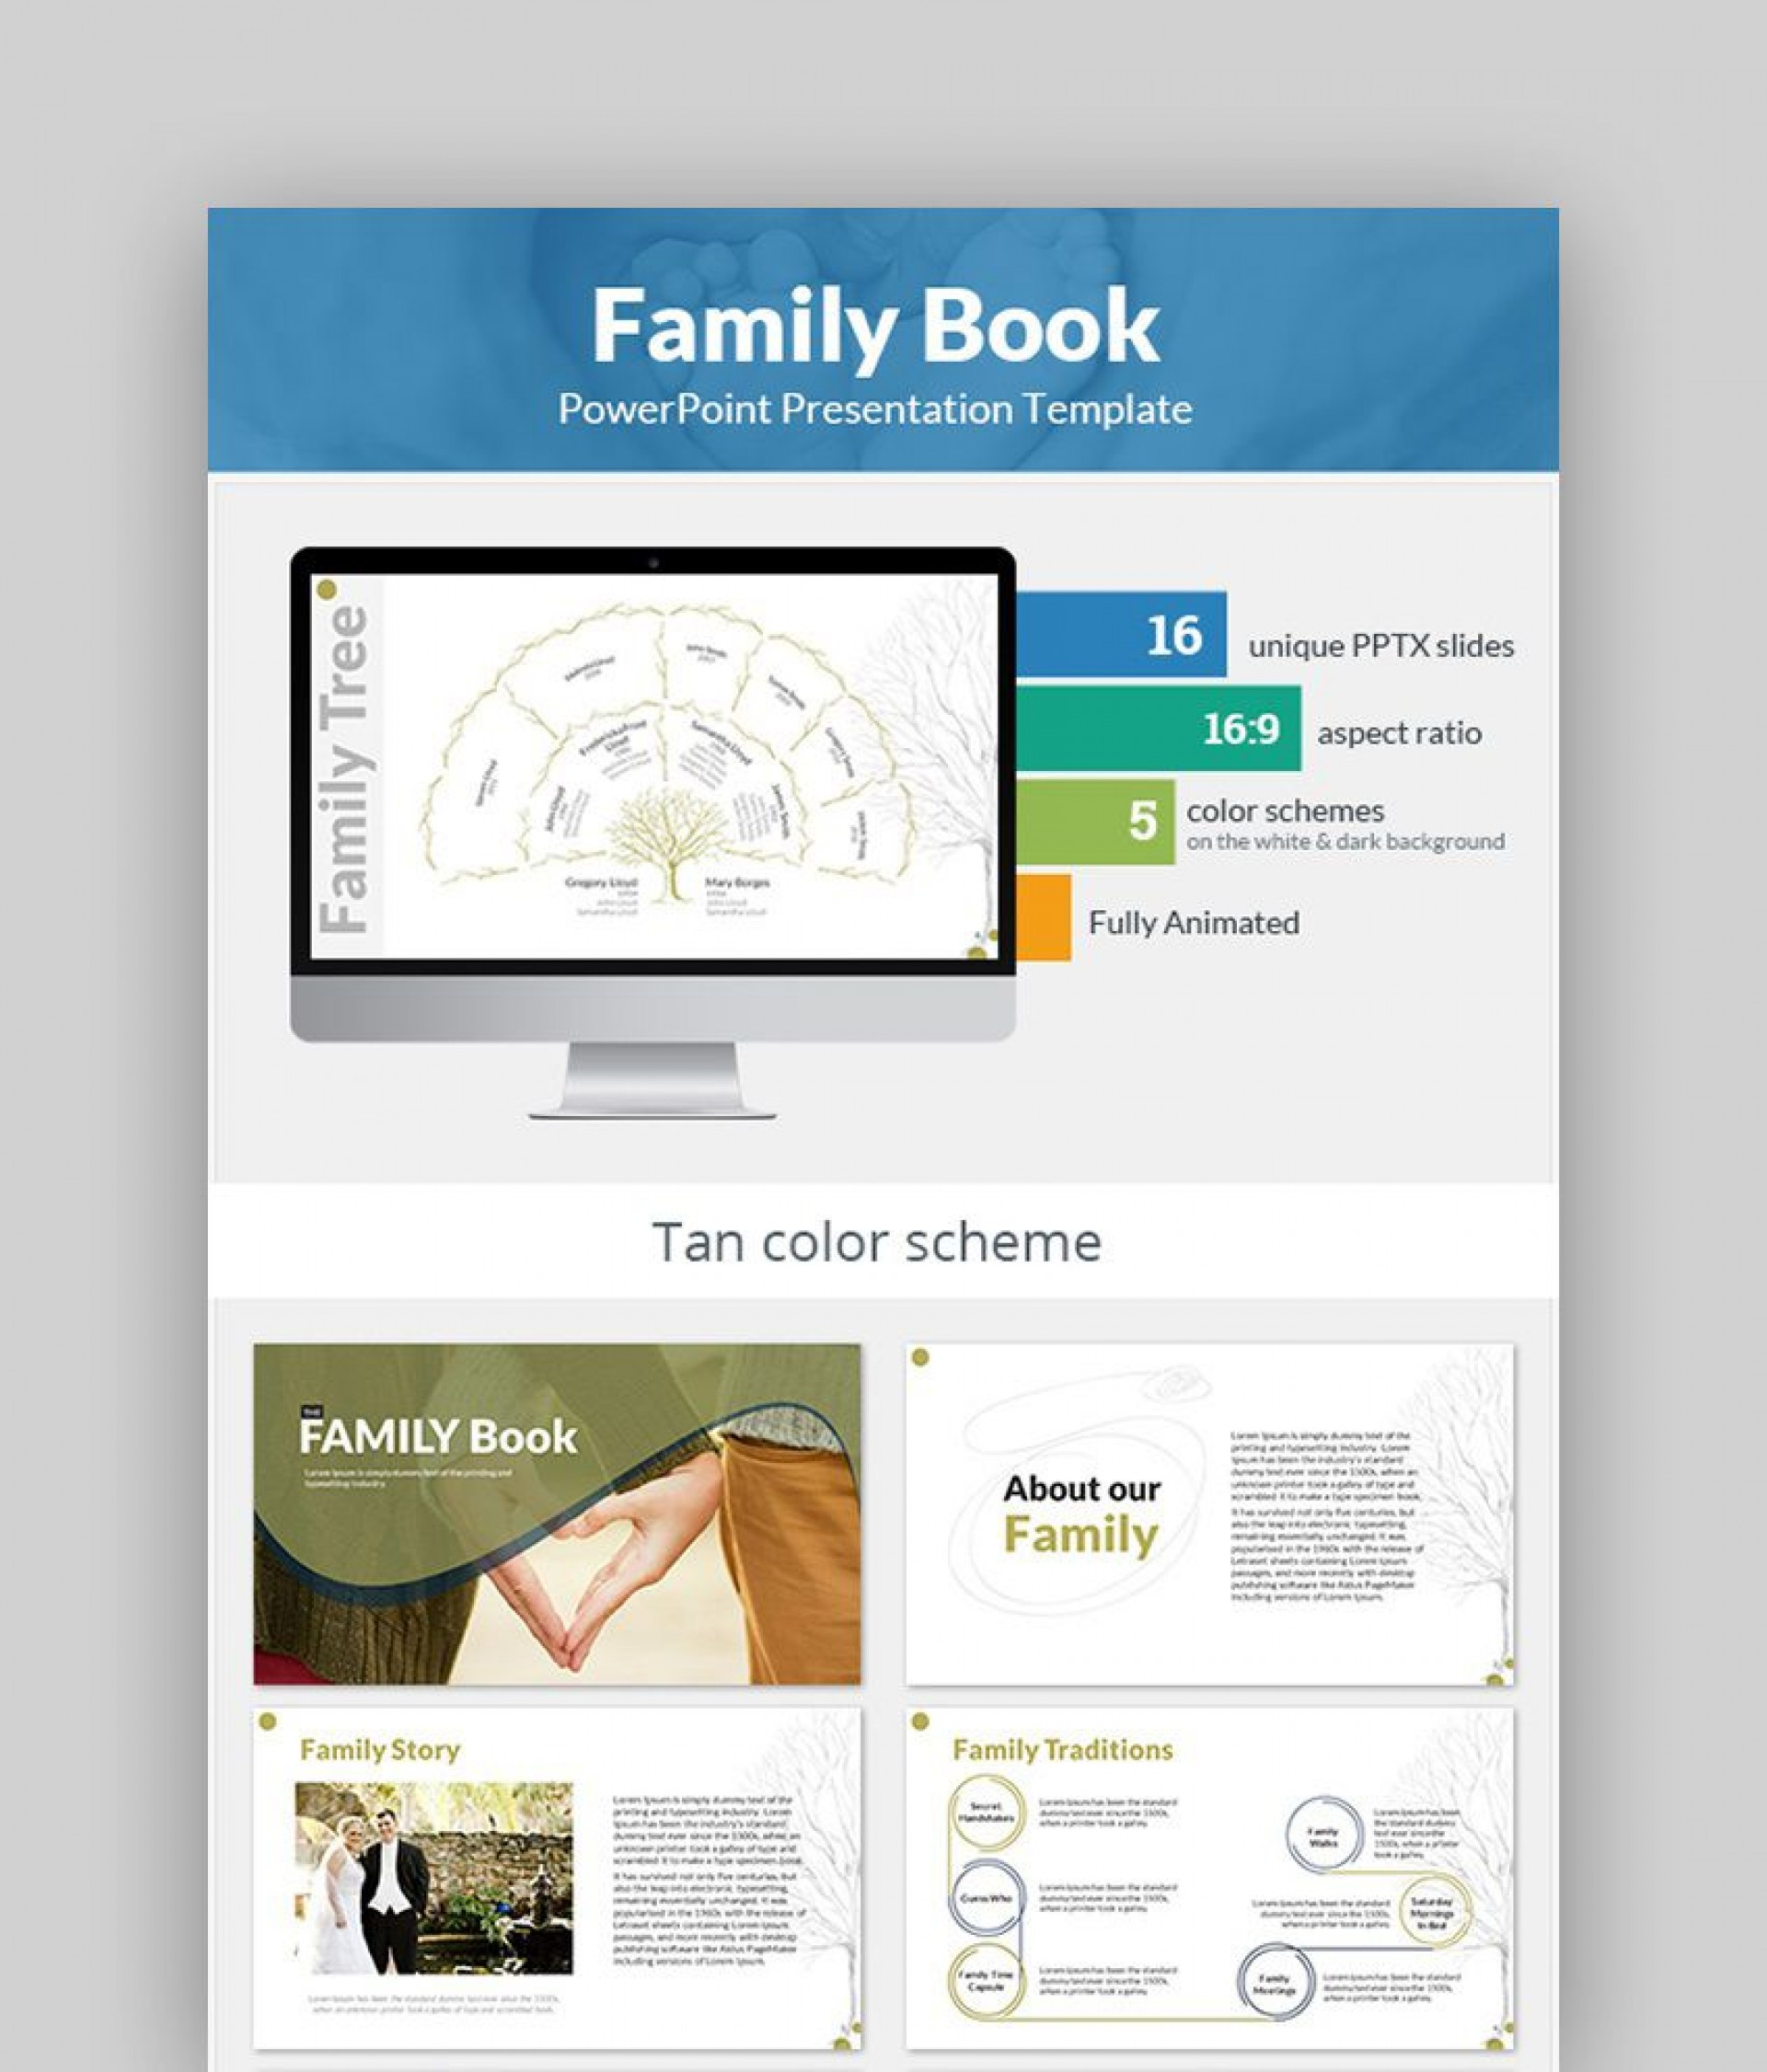 007 Incredible Family Tree Book Template Free Concept  History1920